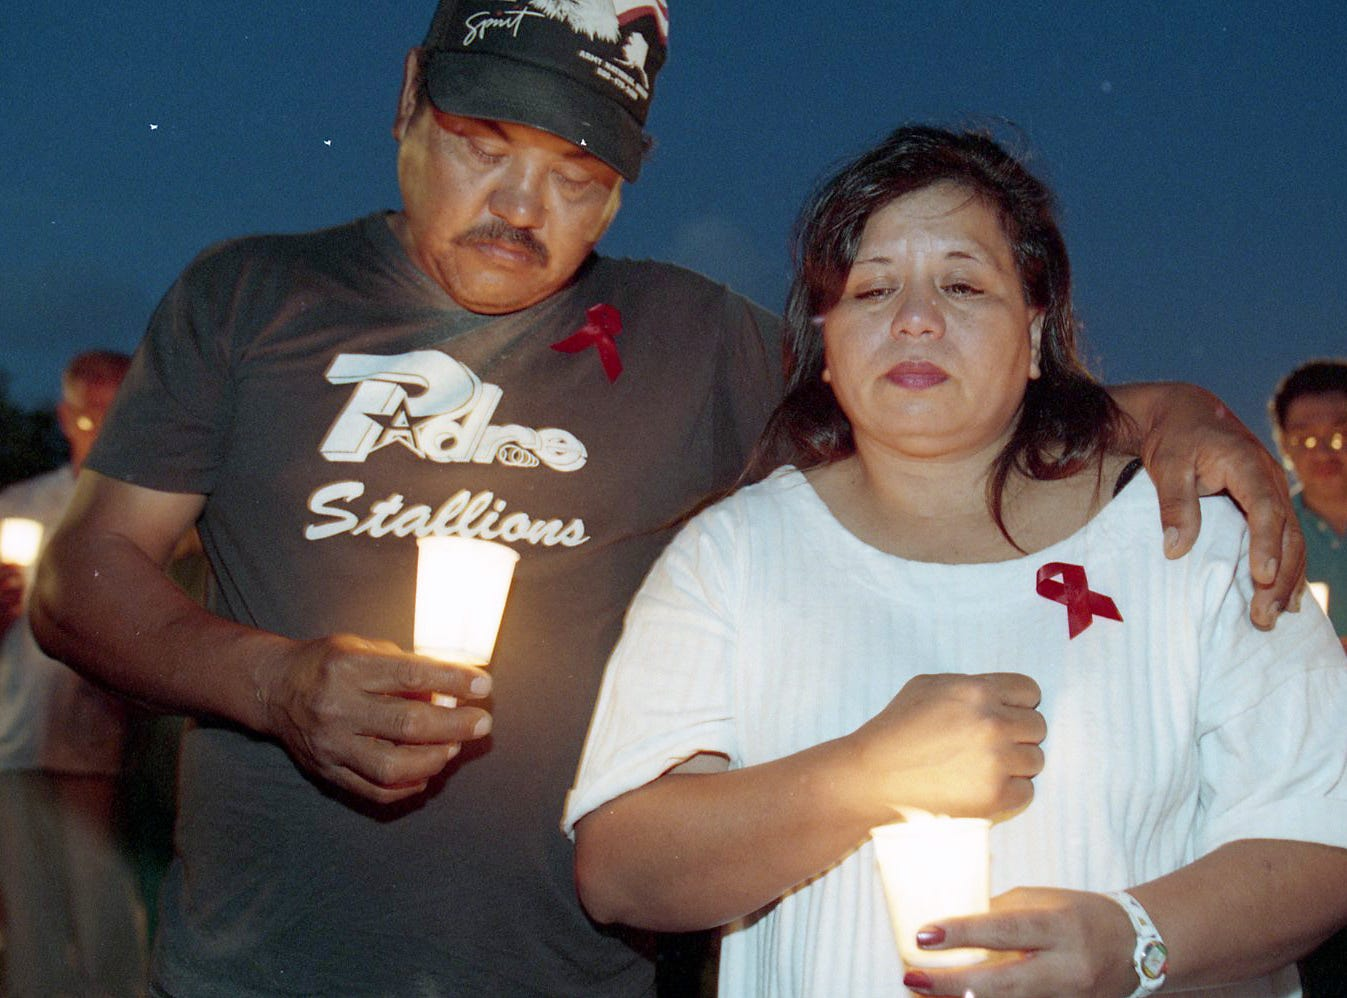 Joe and Diane Carrizales pause during the reading of a list of loved ones lost to AIDS at the 12th international AIDS Candlelight Memorial and Mobilization on May 21, 1995 at Heritage Park. The Carrizales had lost their son Joe Anthony to AIDS almost a year and a half prior.